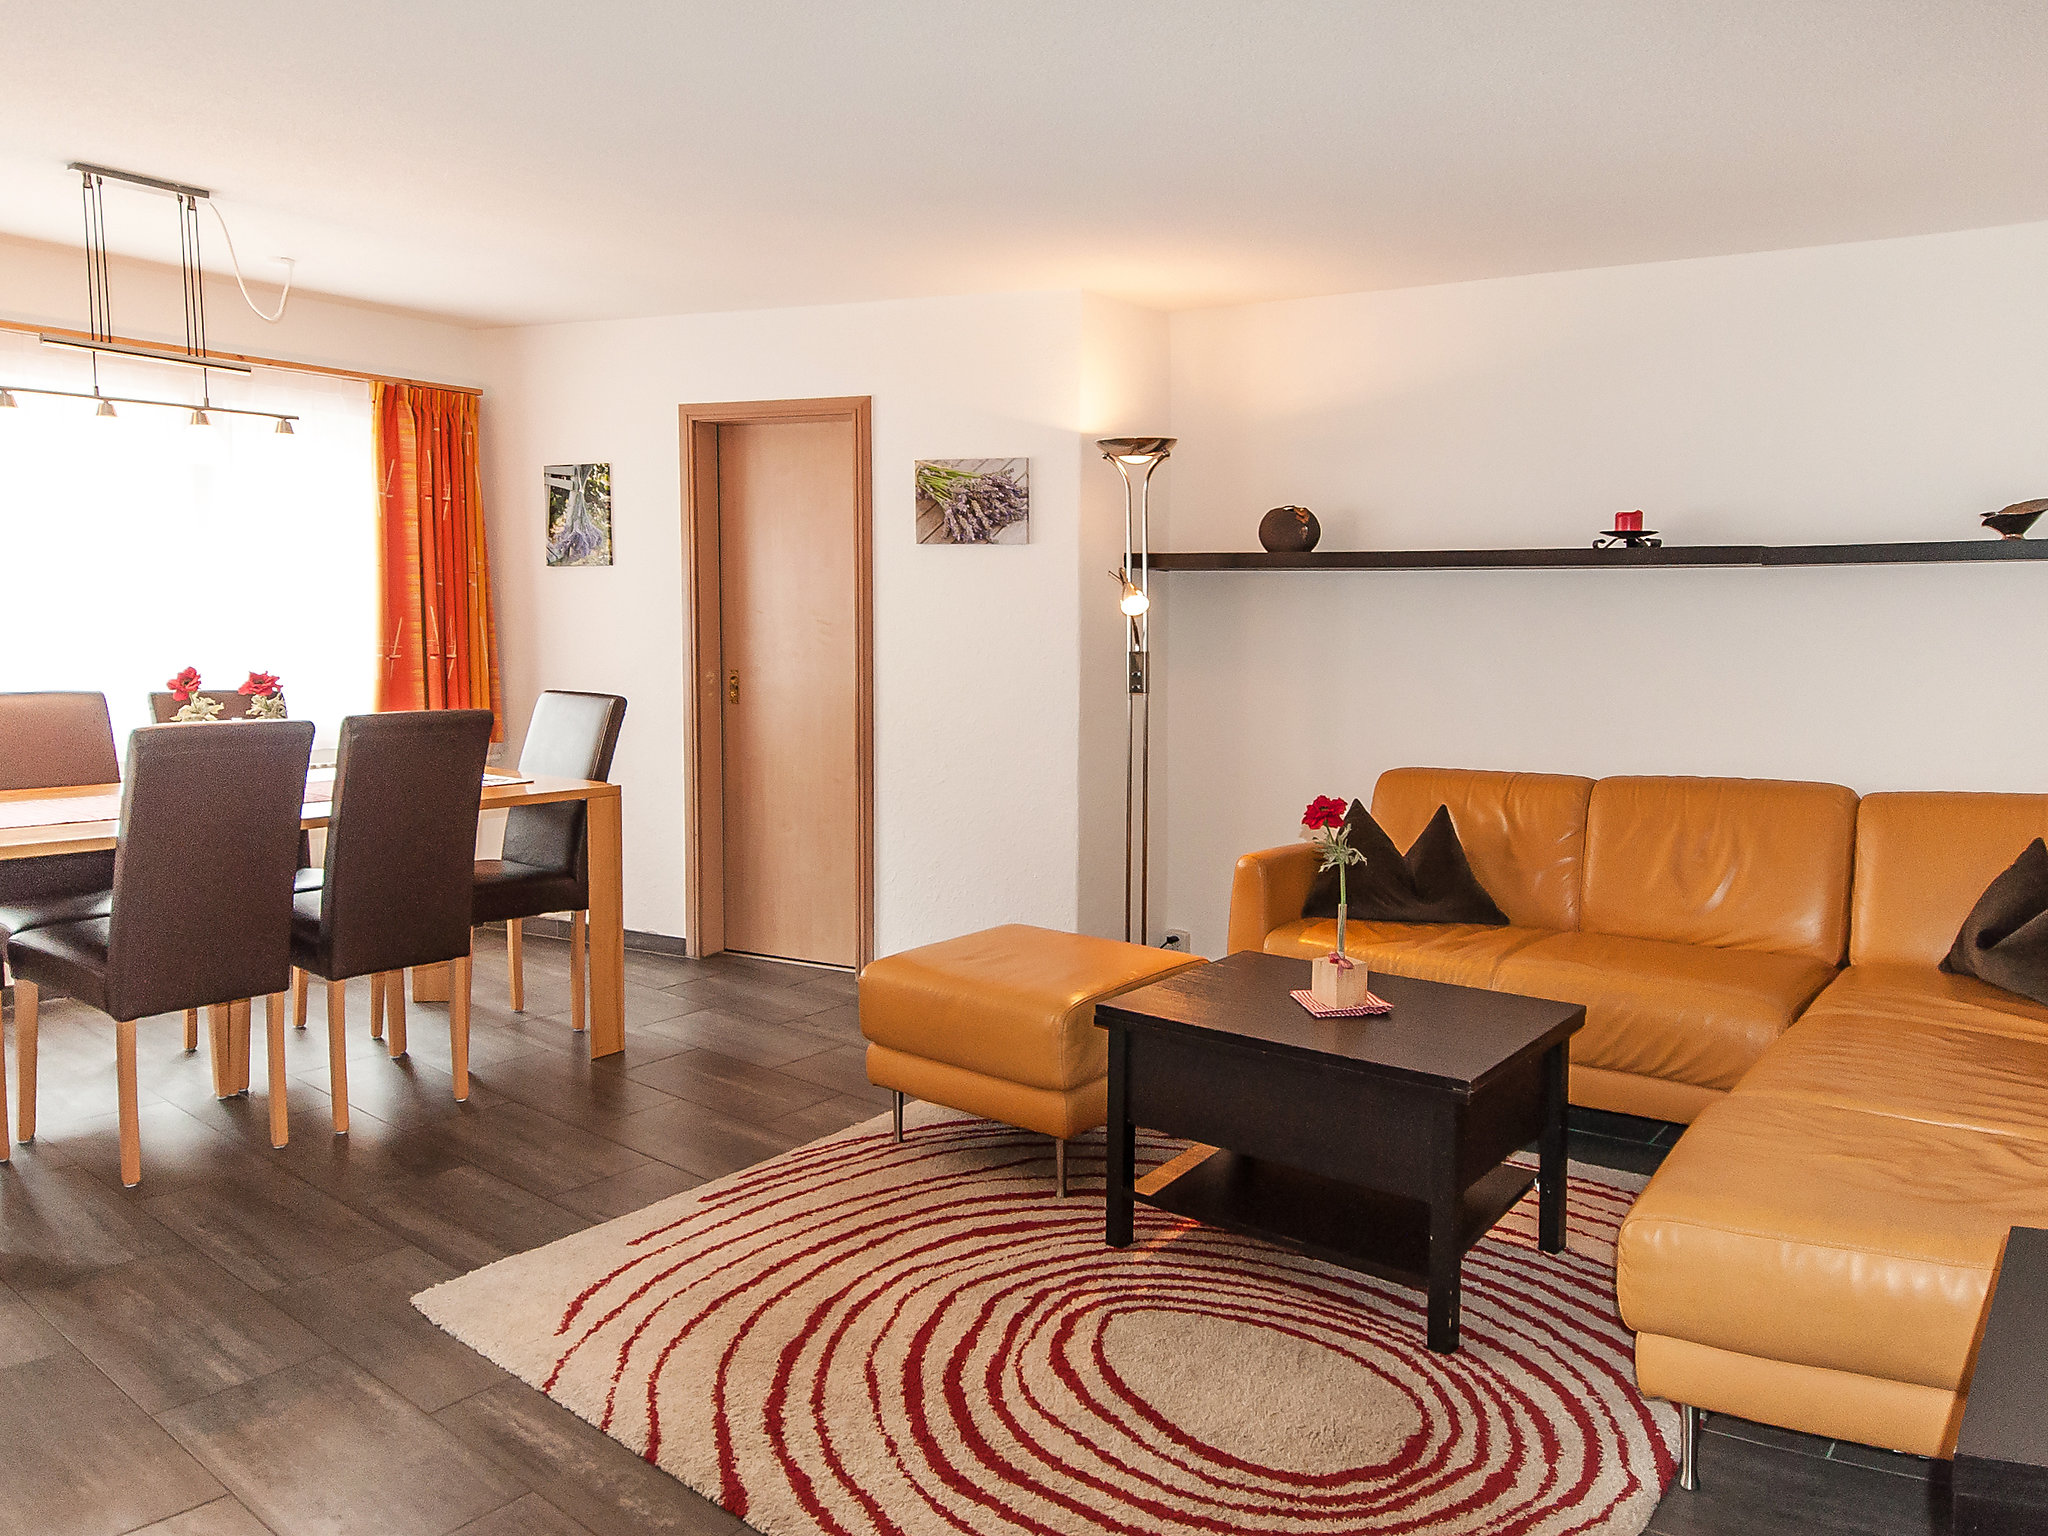 Hotel Hirschen - Three Bedroom No.2, Interlaken